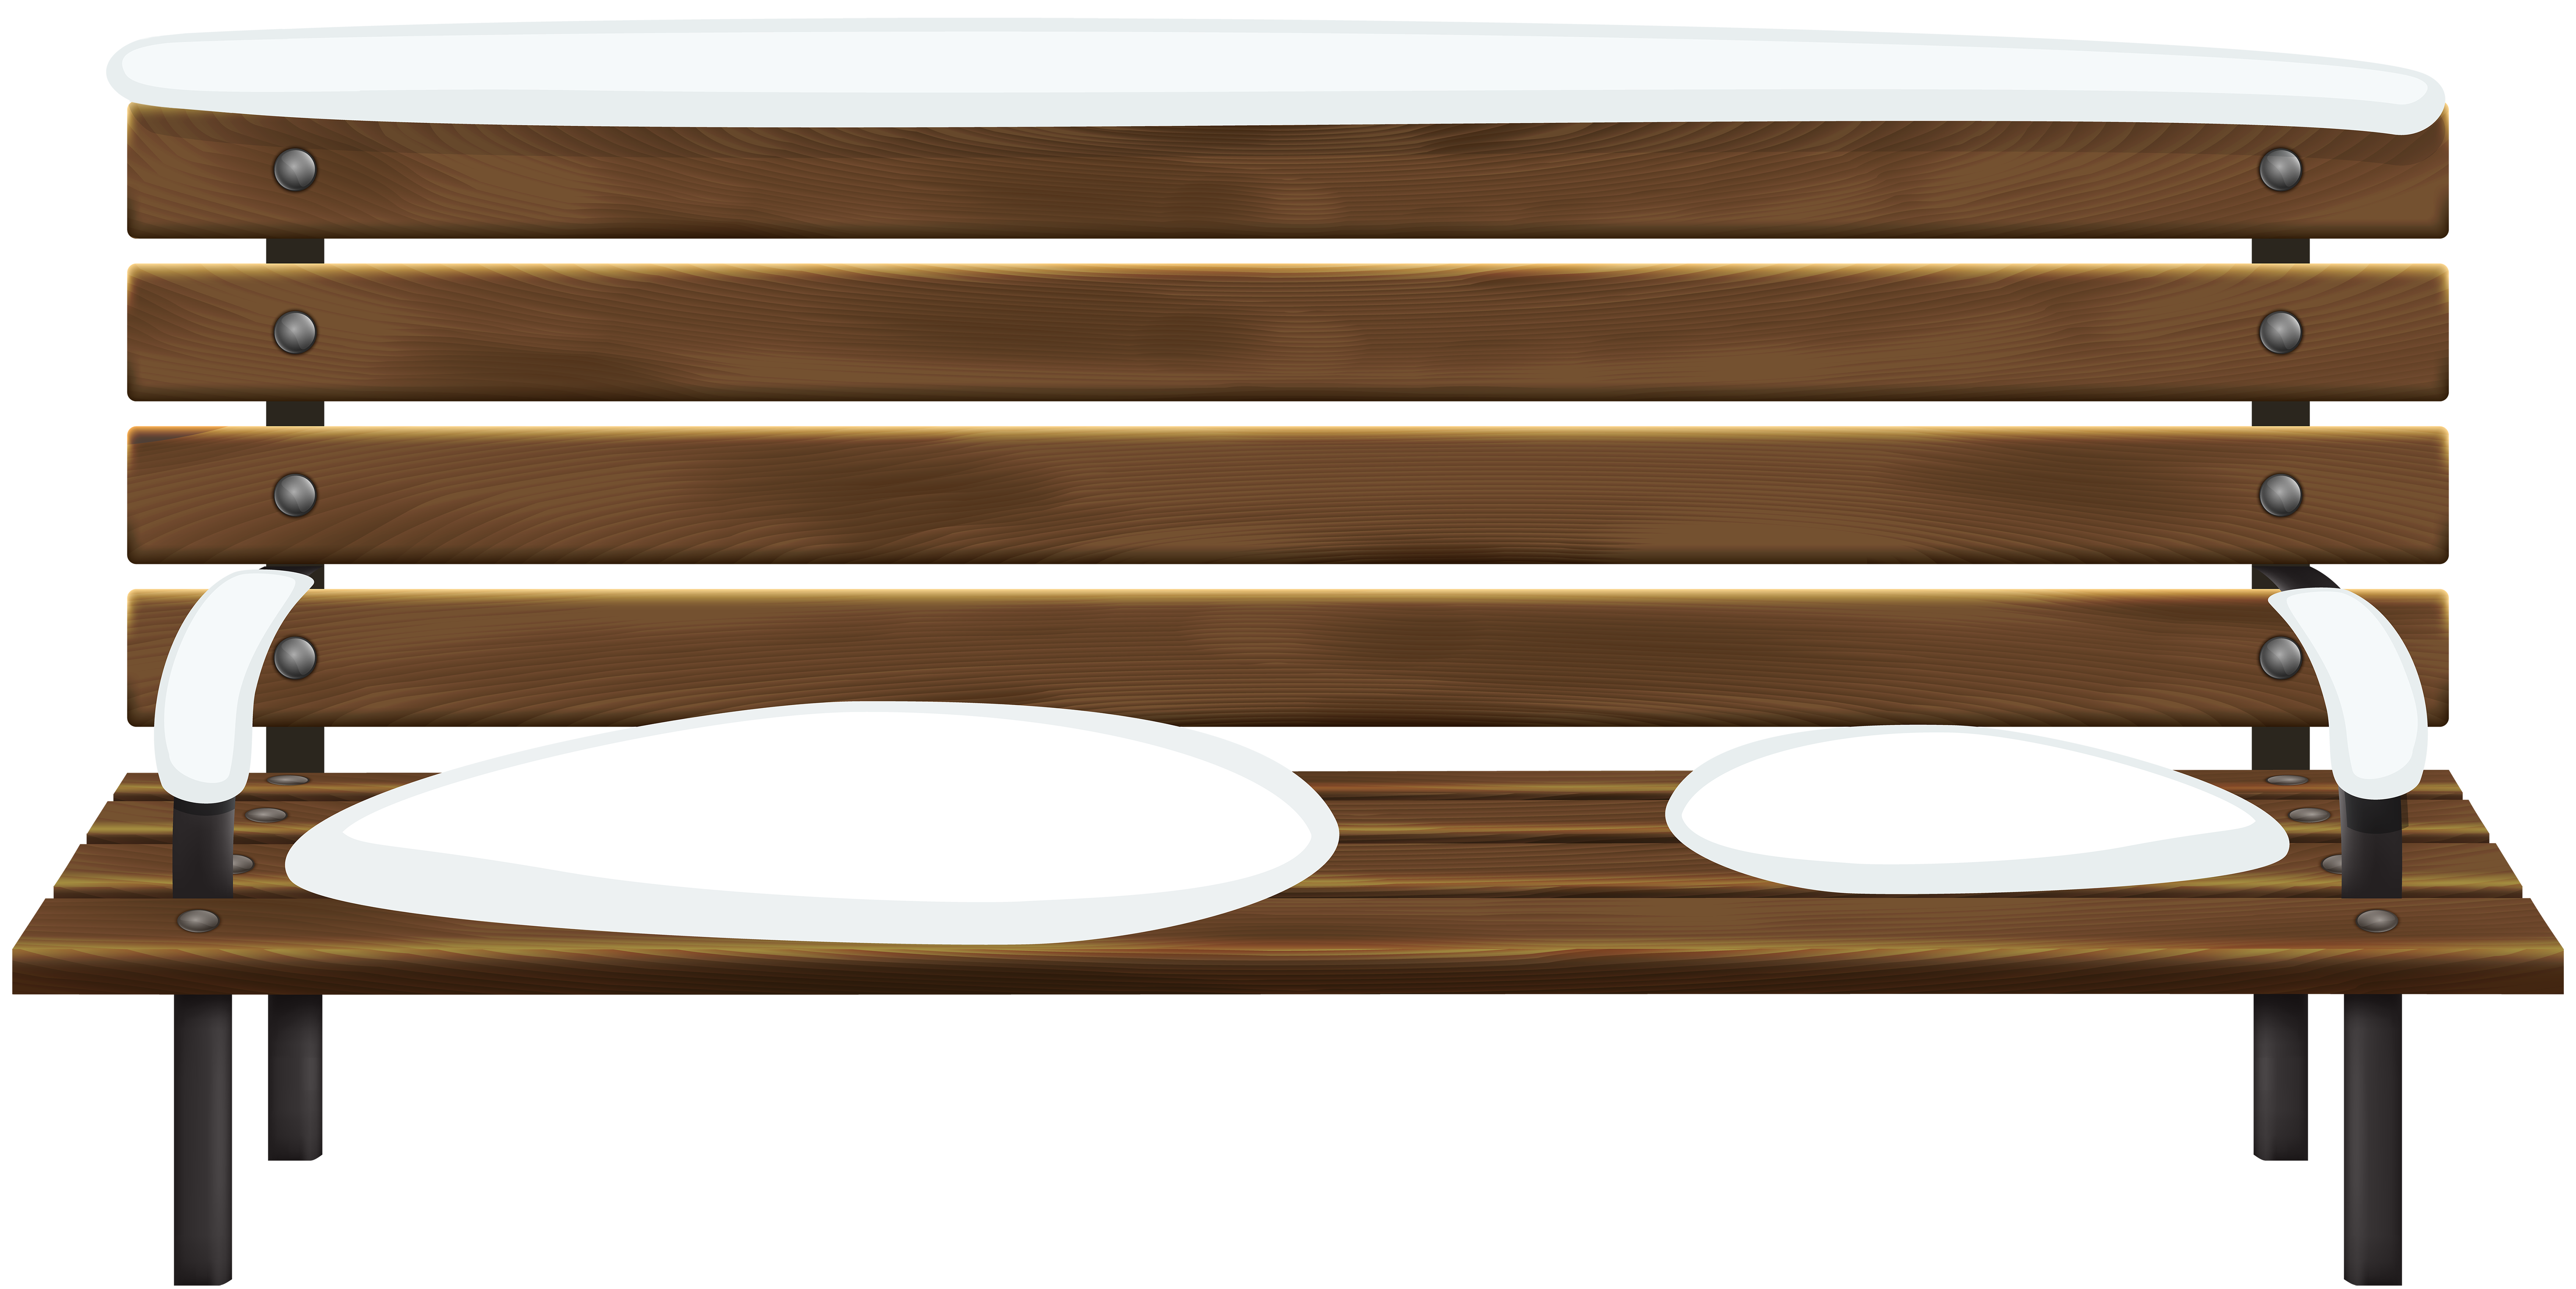 freeuse download Winter png clip art. Bench clipart